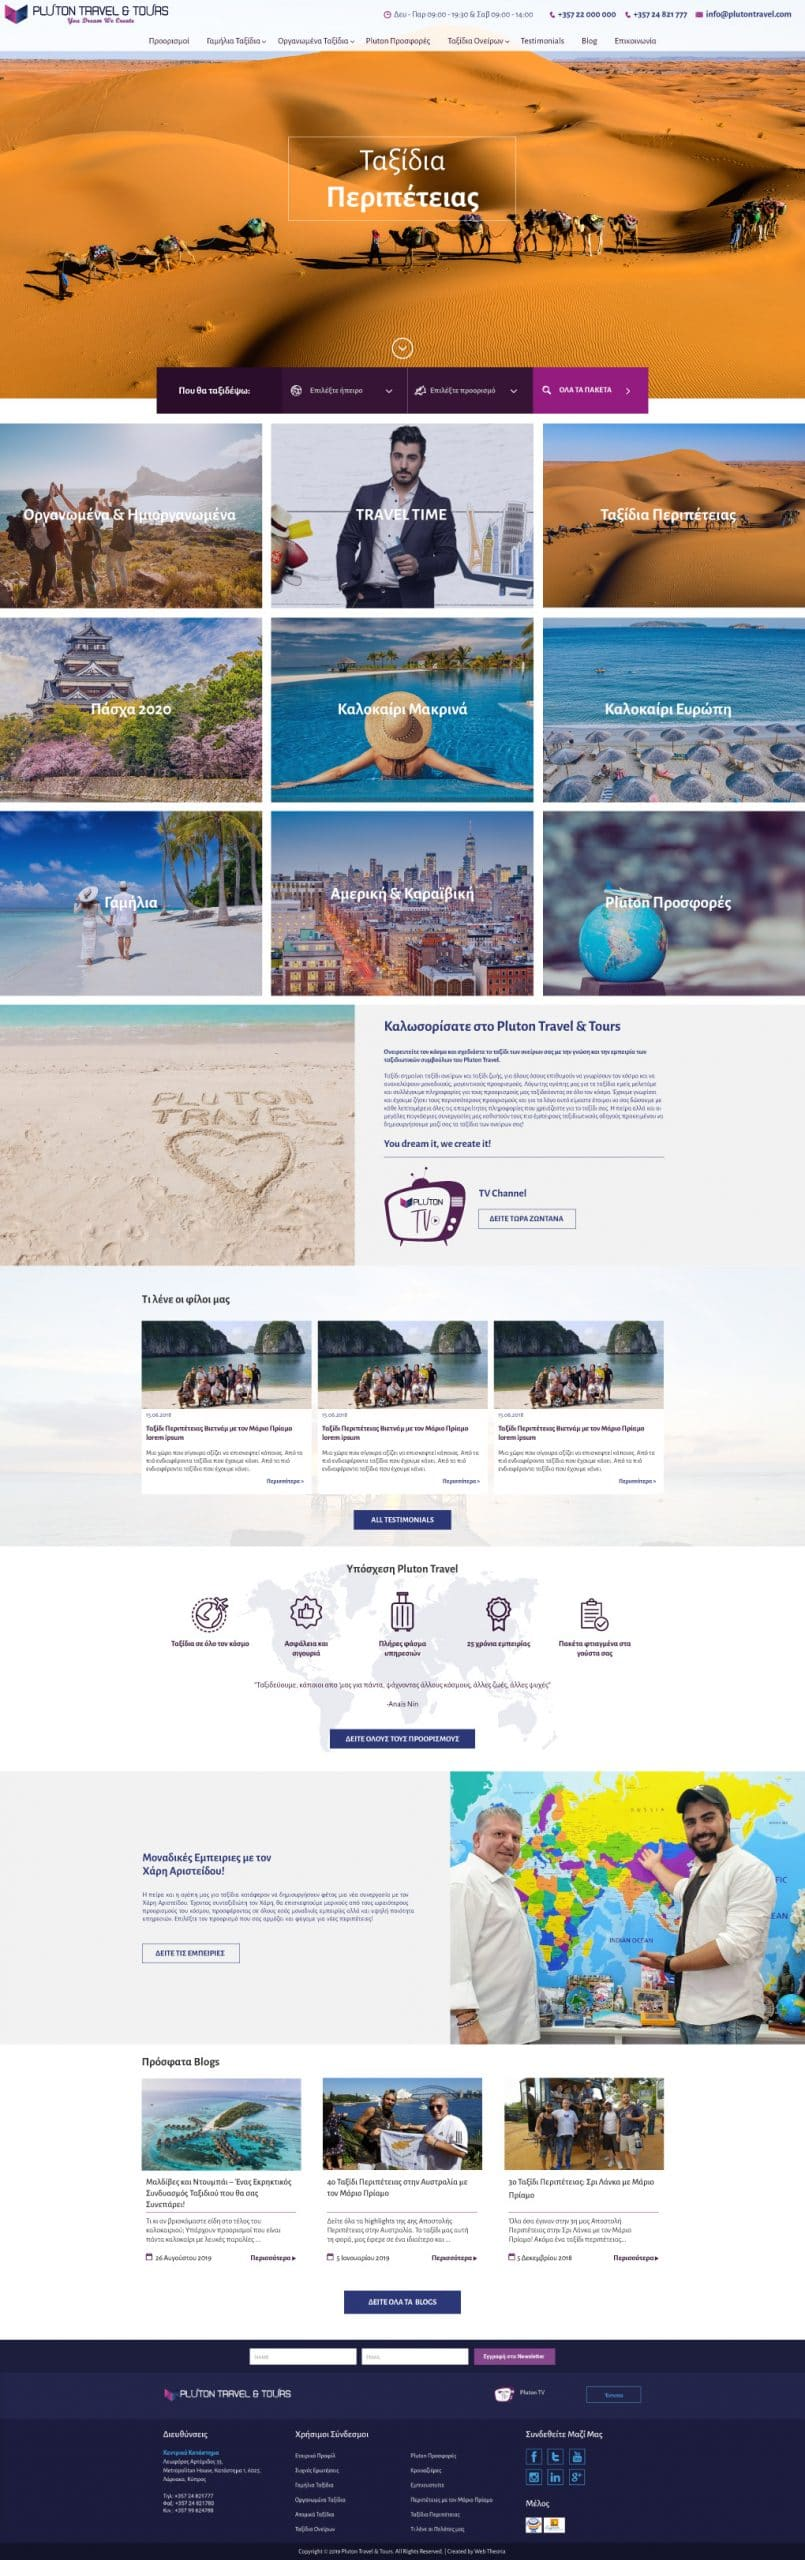 Email template screenshot for travel agency. Many striking images of tourist attractions and activities in a grid layout. Some verbal descriptions accompany the photos.